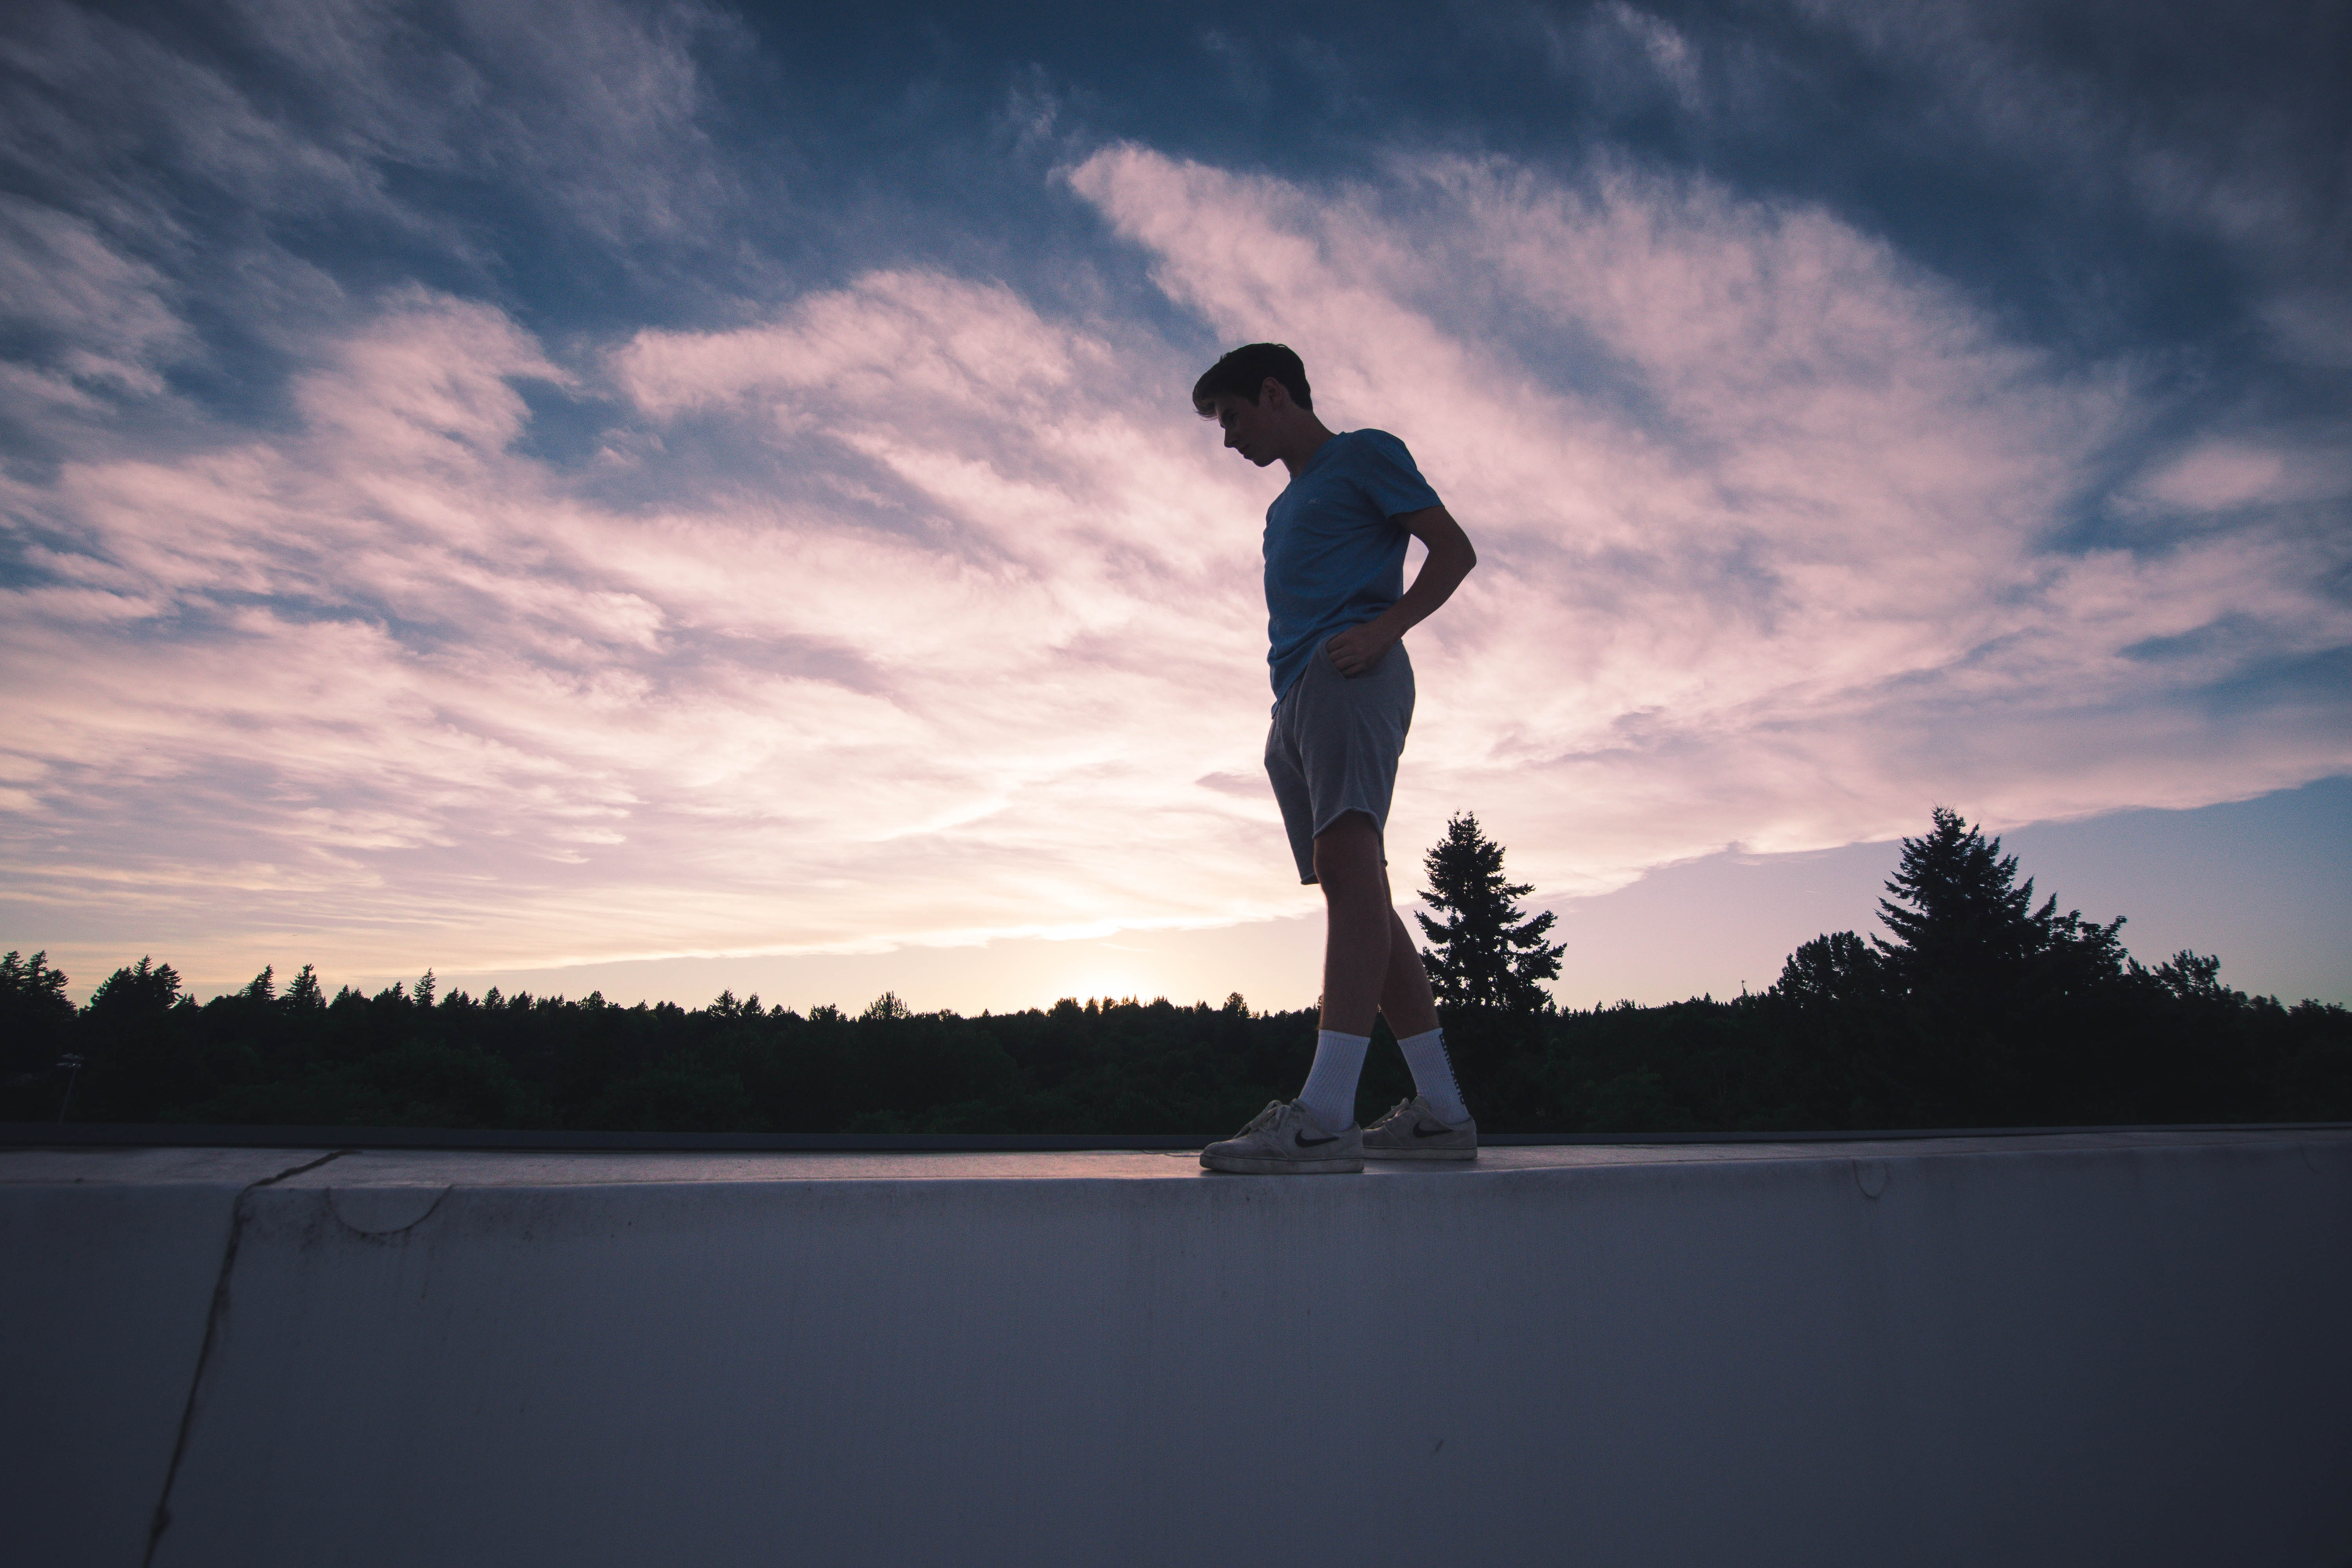 man standing on white concrete ledge below cloudy sky during dawn